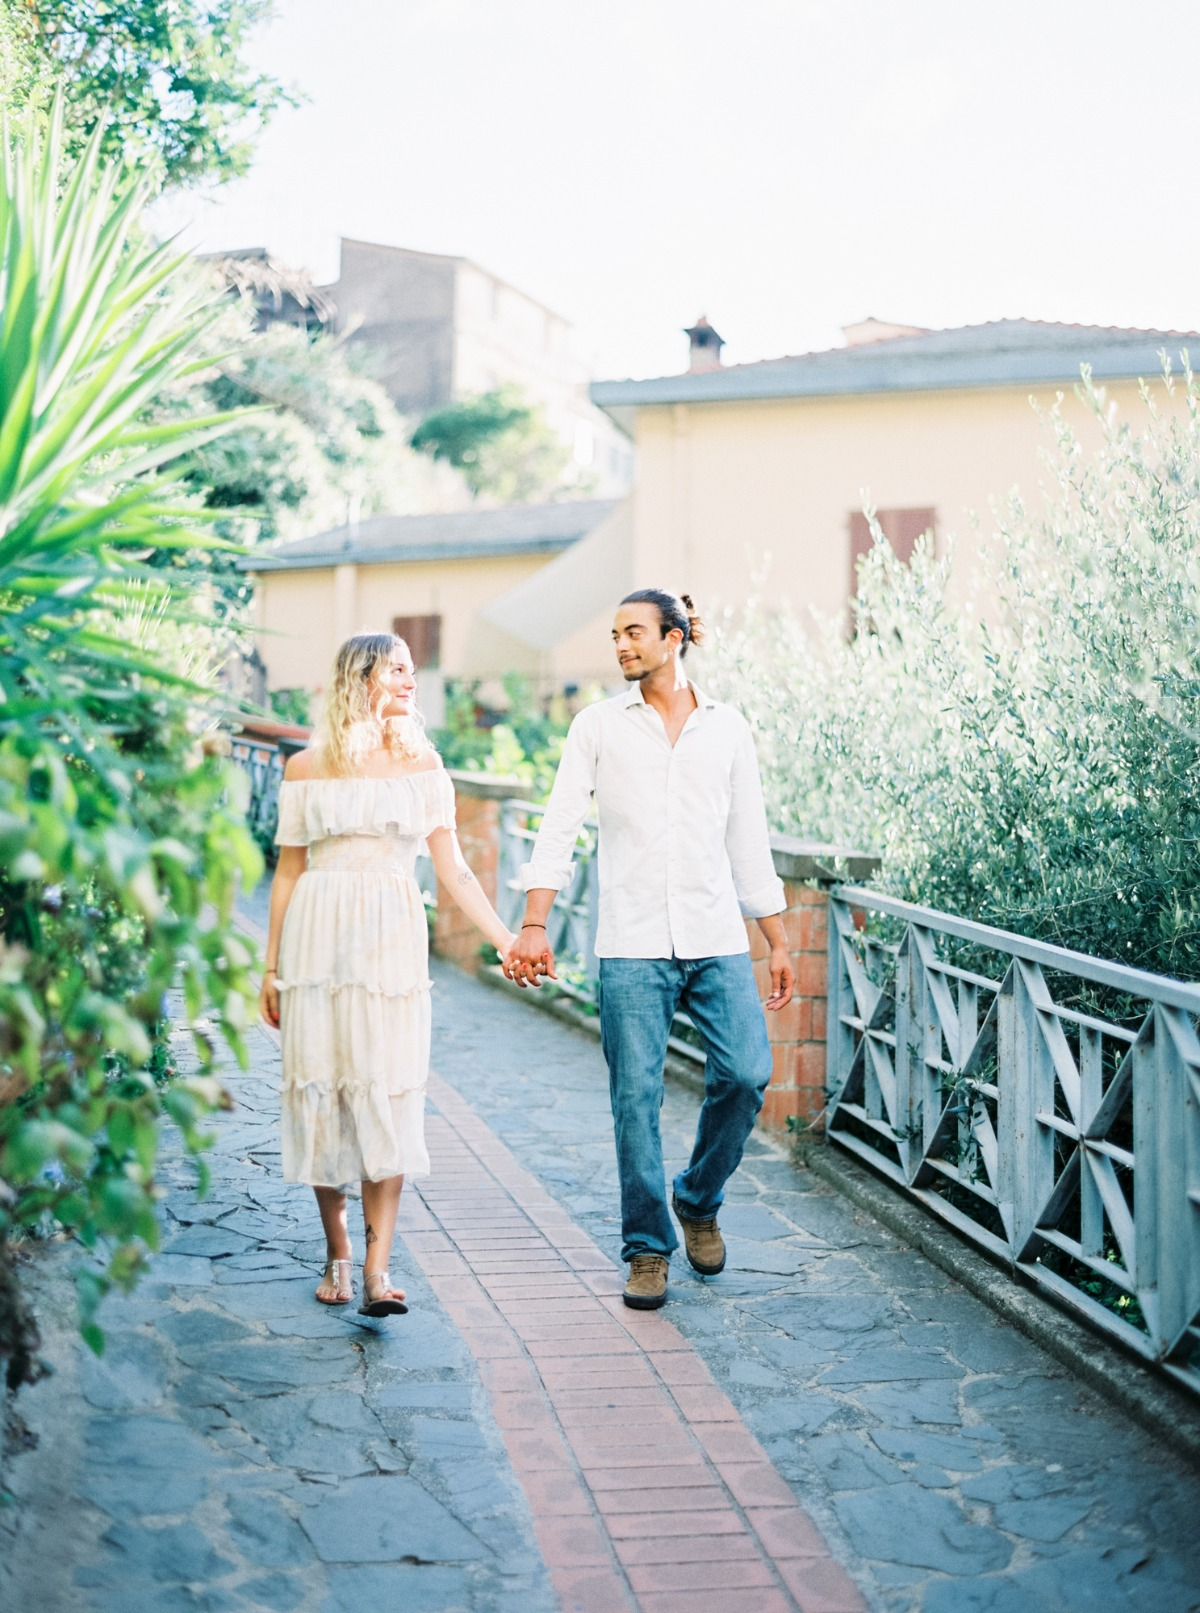 A Picturesque Engagement In Cinque Terre, Tuscany